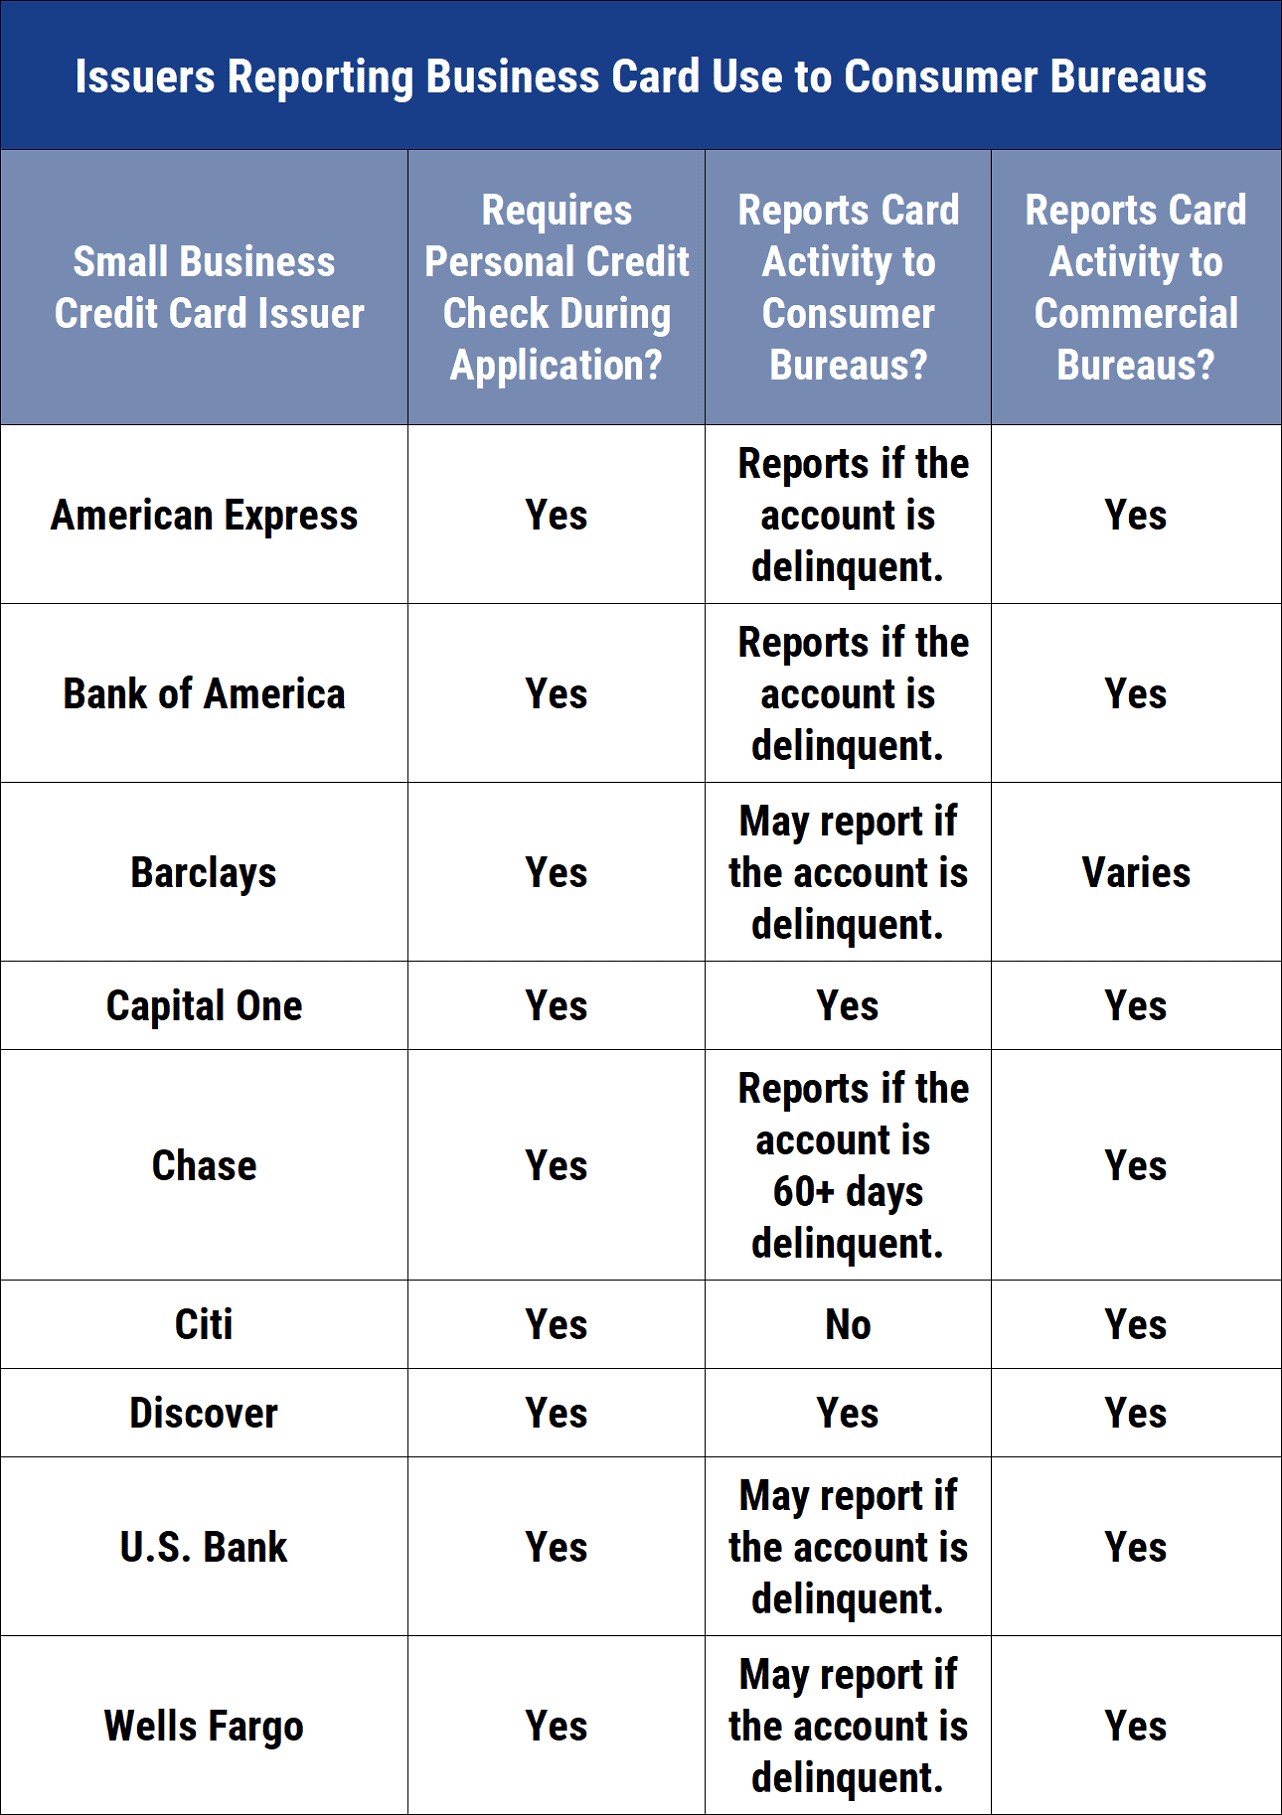 Table of Issuers That Report Business Card Use to Consumer Bureaus